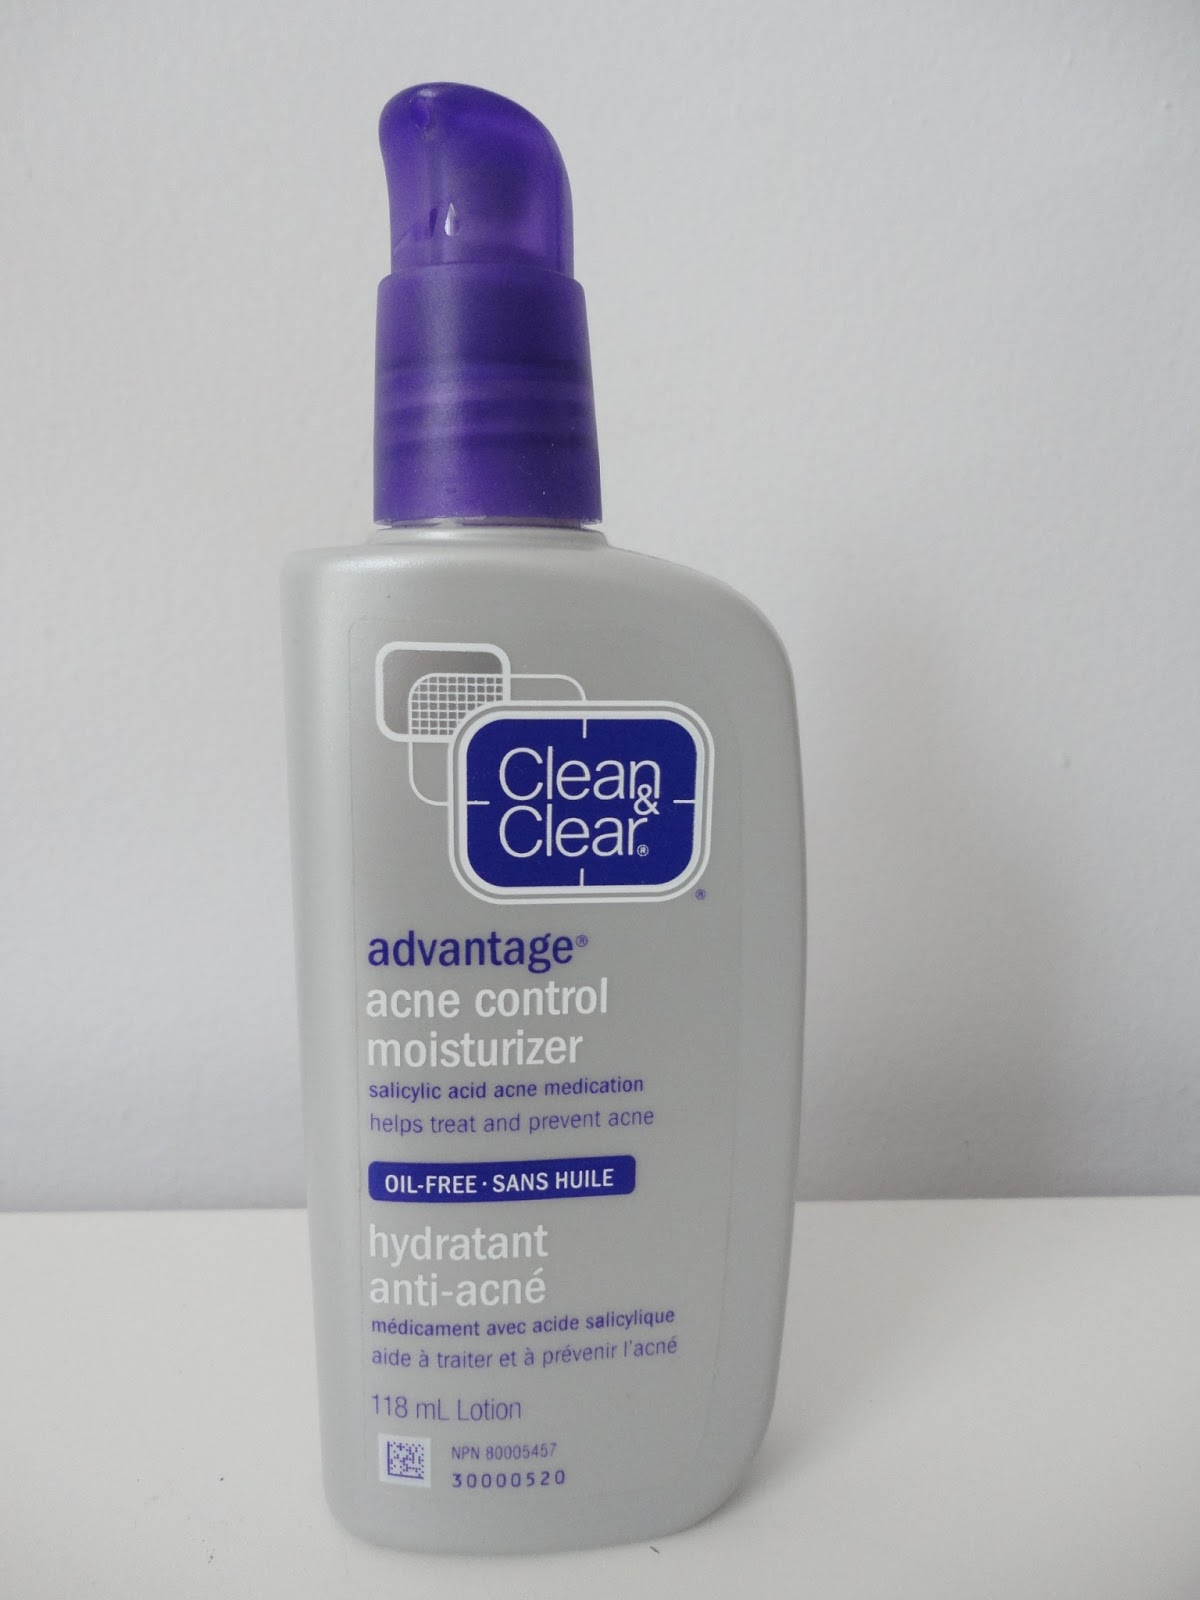 review clean and clear acne advantage moisturizer and my